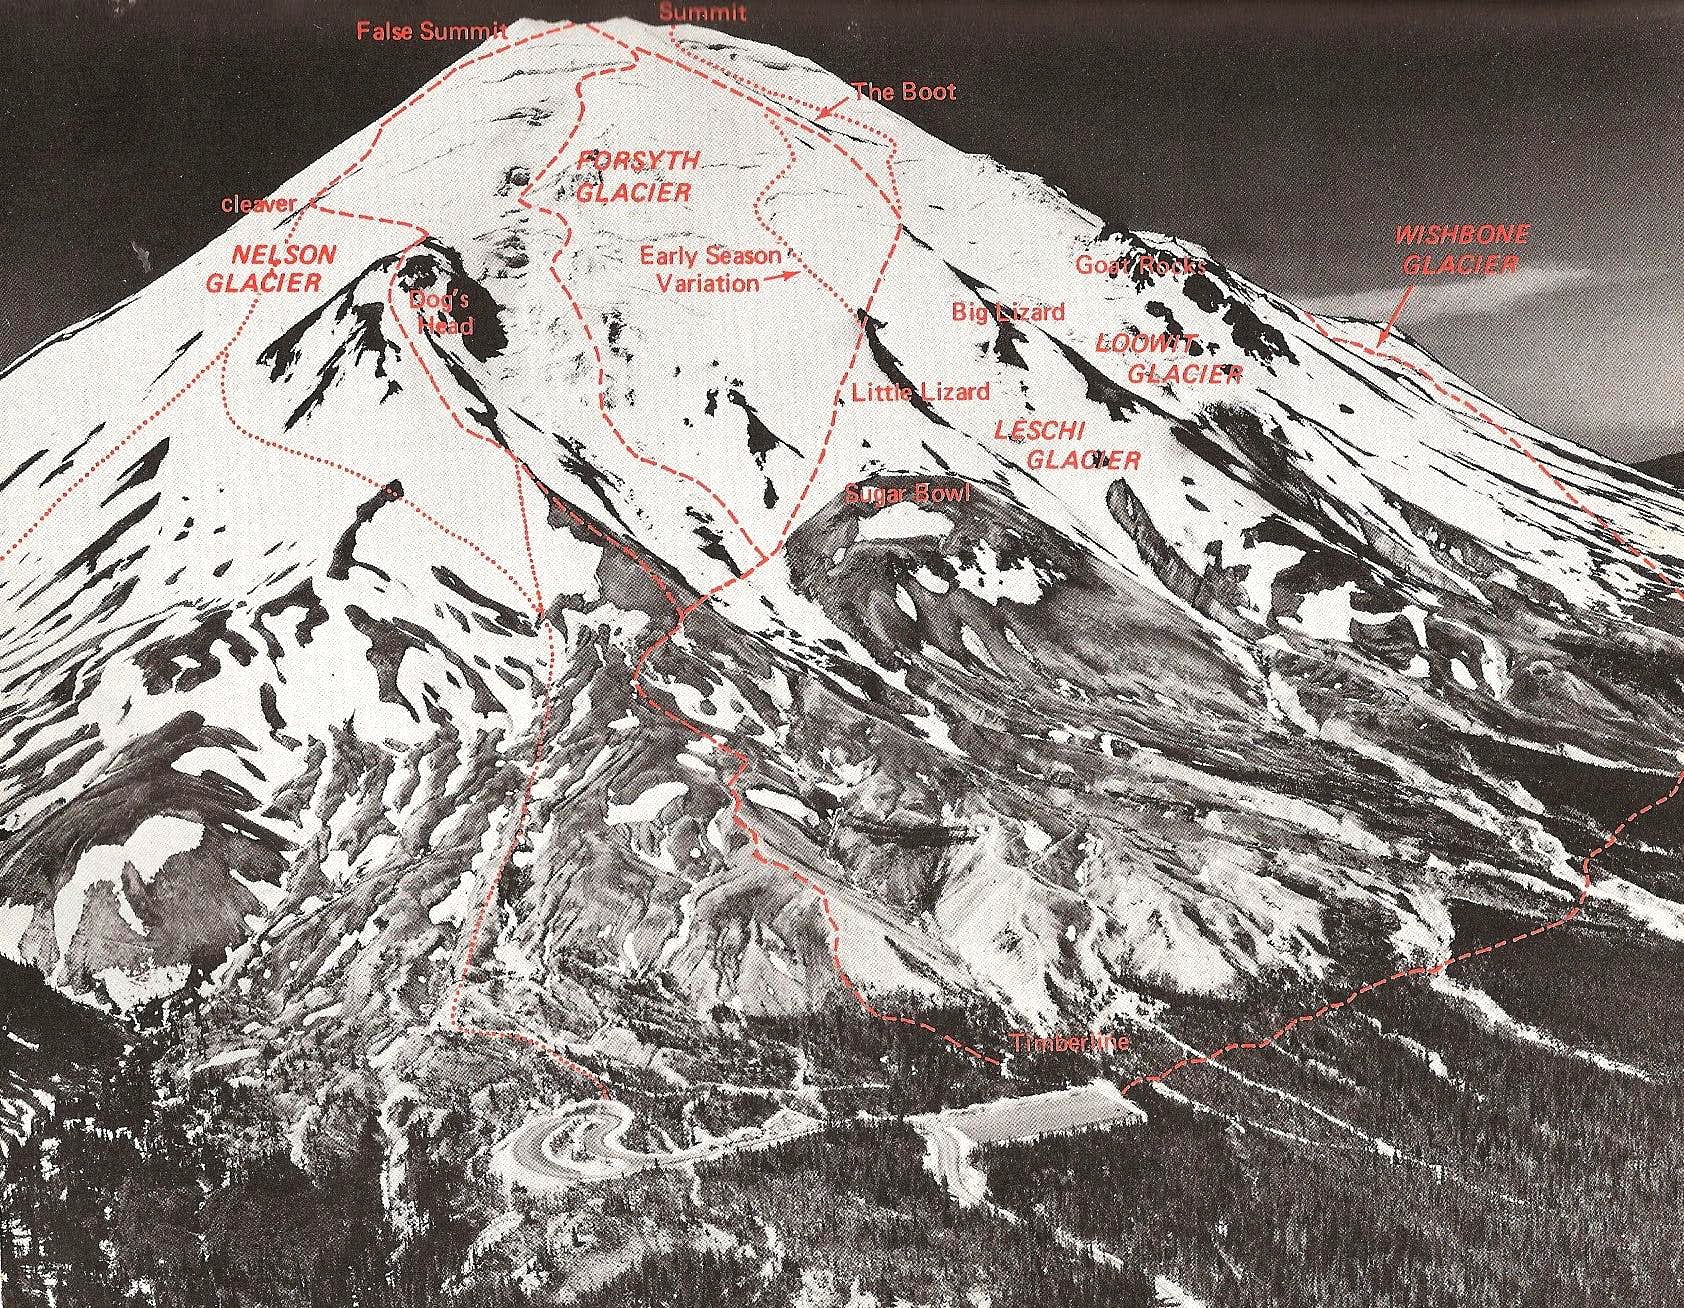 Mount Saint Helens pre-eruption climbing routes from 1973 Cascade Alpine Guide